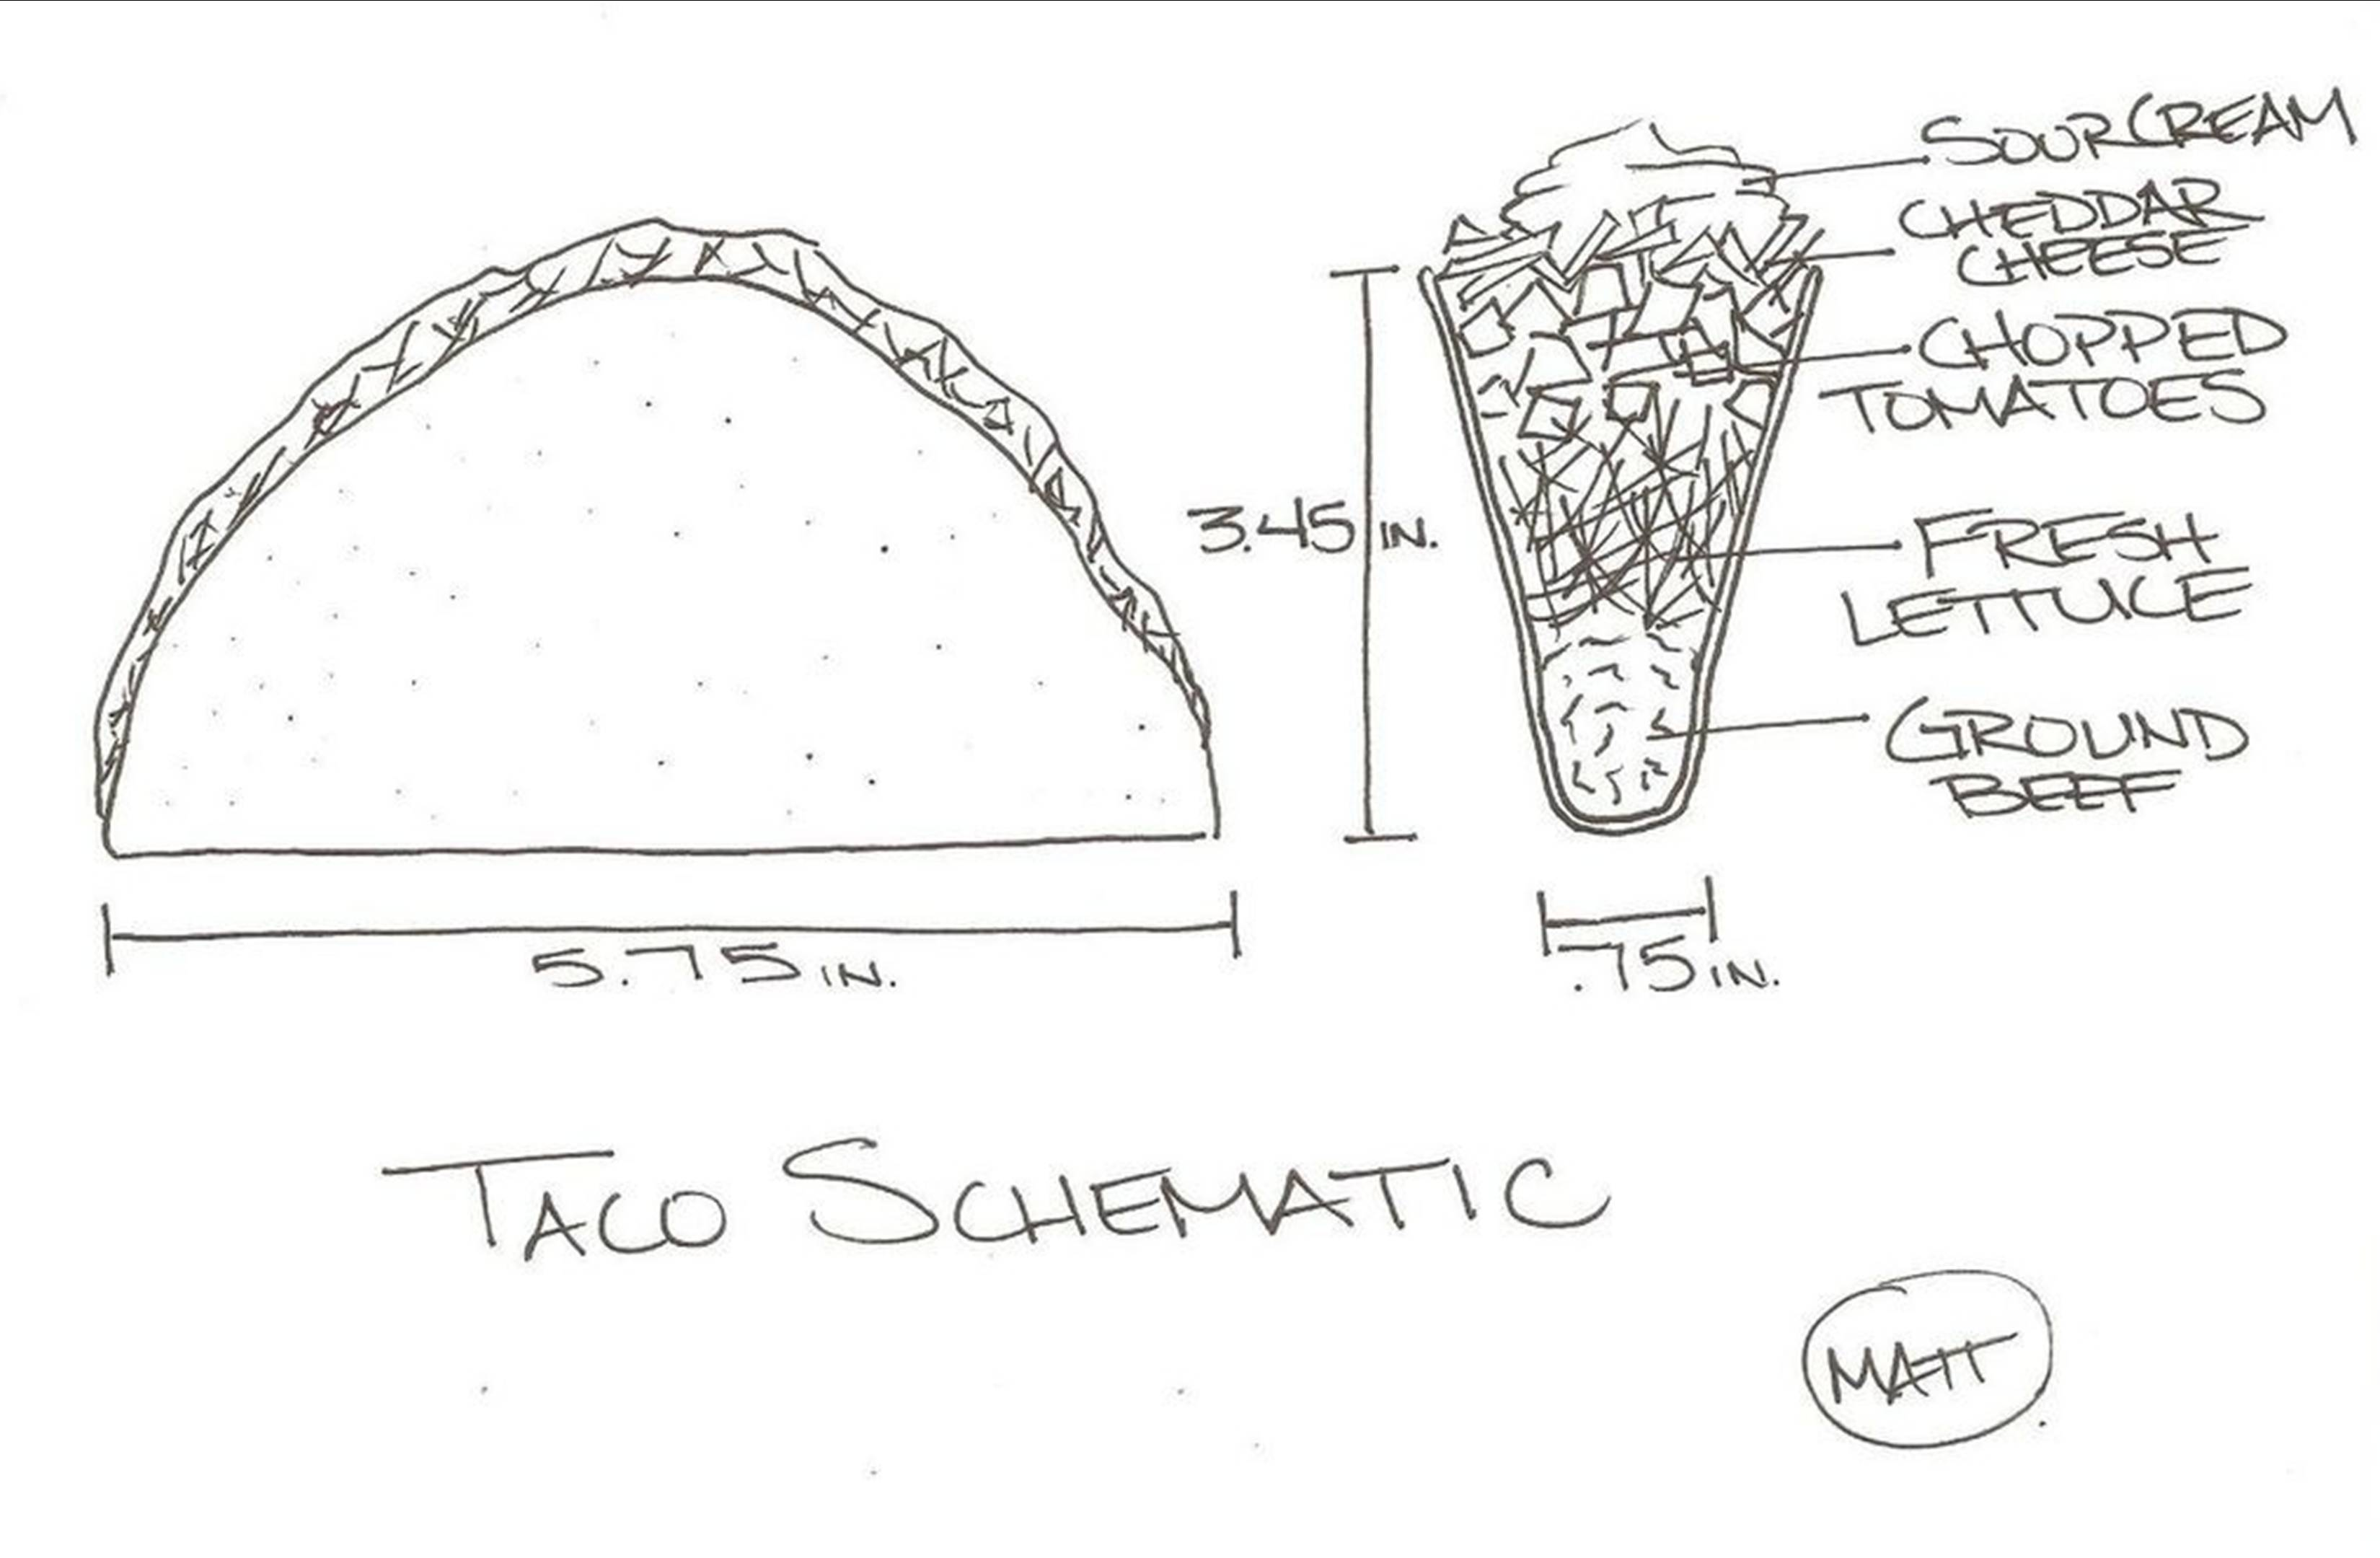 Taco Schematic Diagrams : 23 Wiring Diagram Images